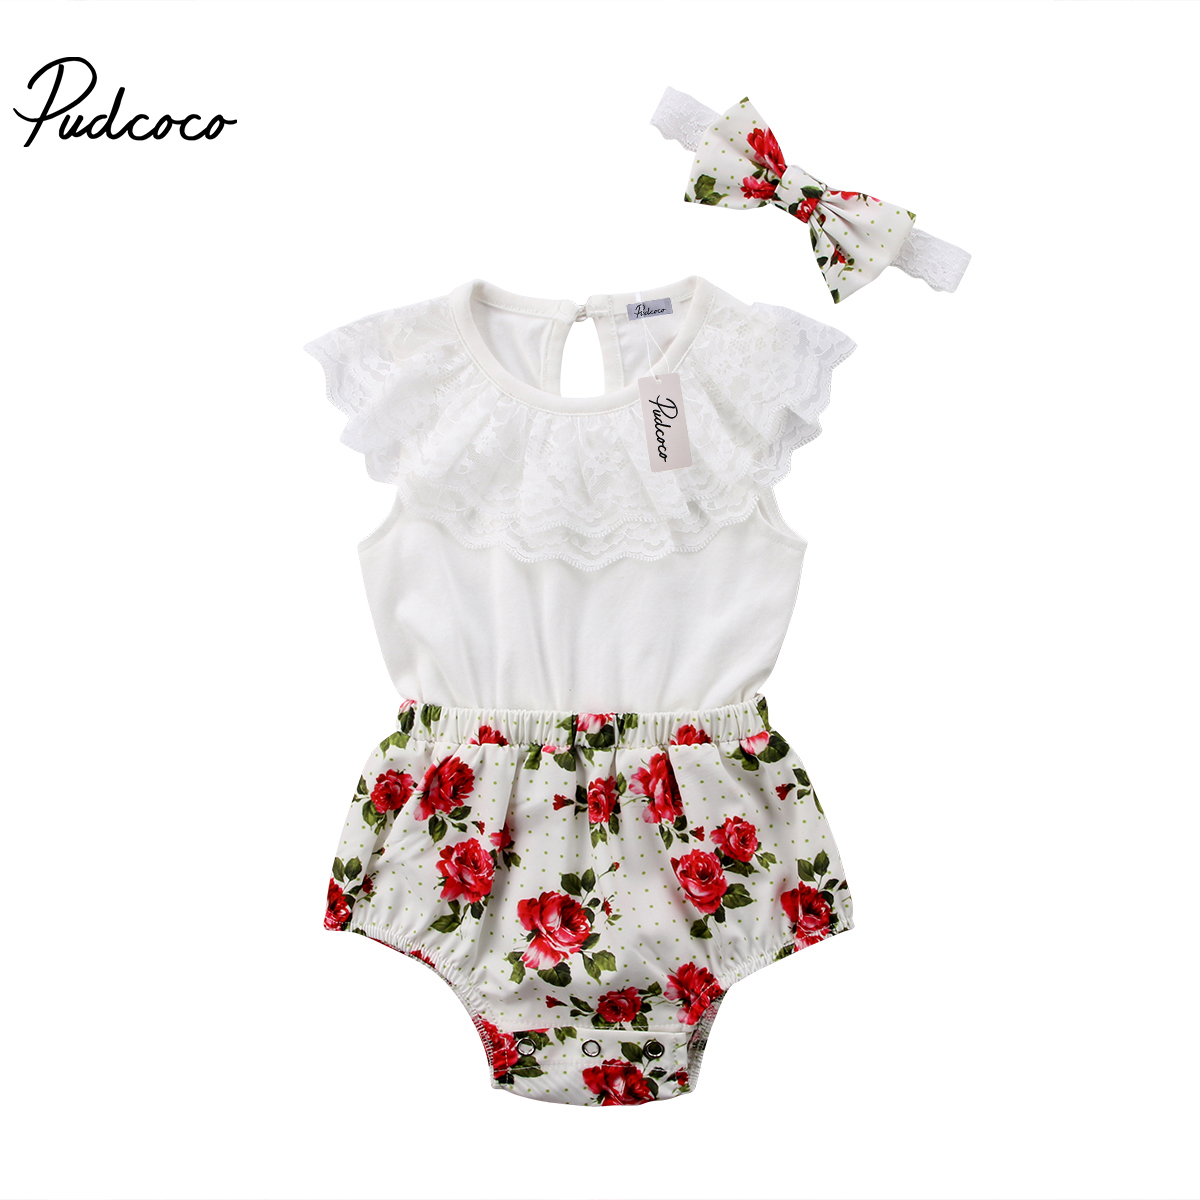 2018 Brand New Cute Newborn Princess Baby Girl Summer Lace Floral Romper Jumpsuit Headband 2PCS Outfits Sunsuit Clothes 0-24M